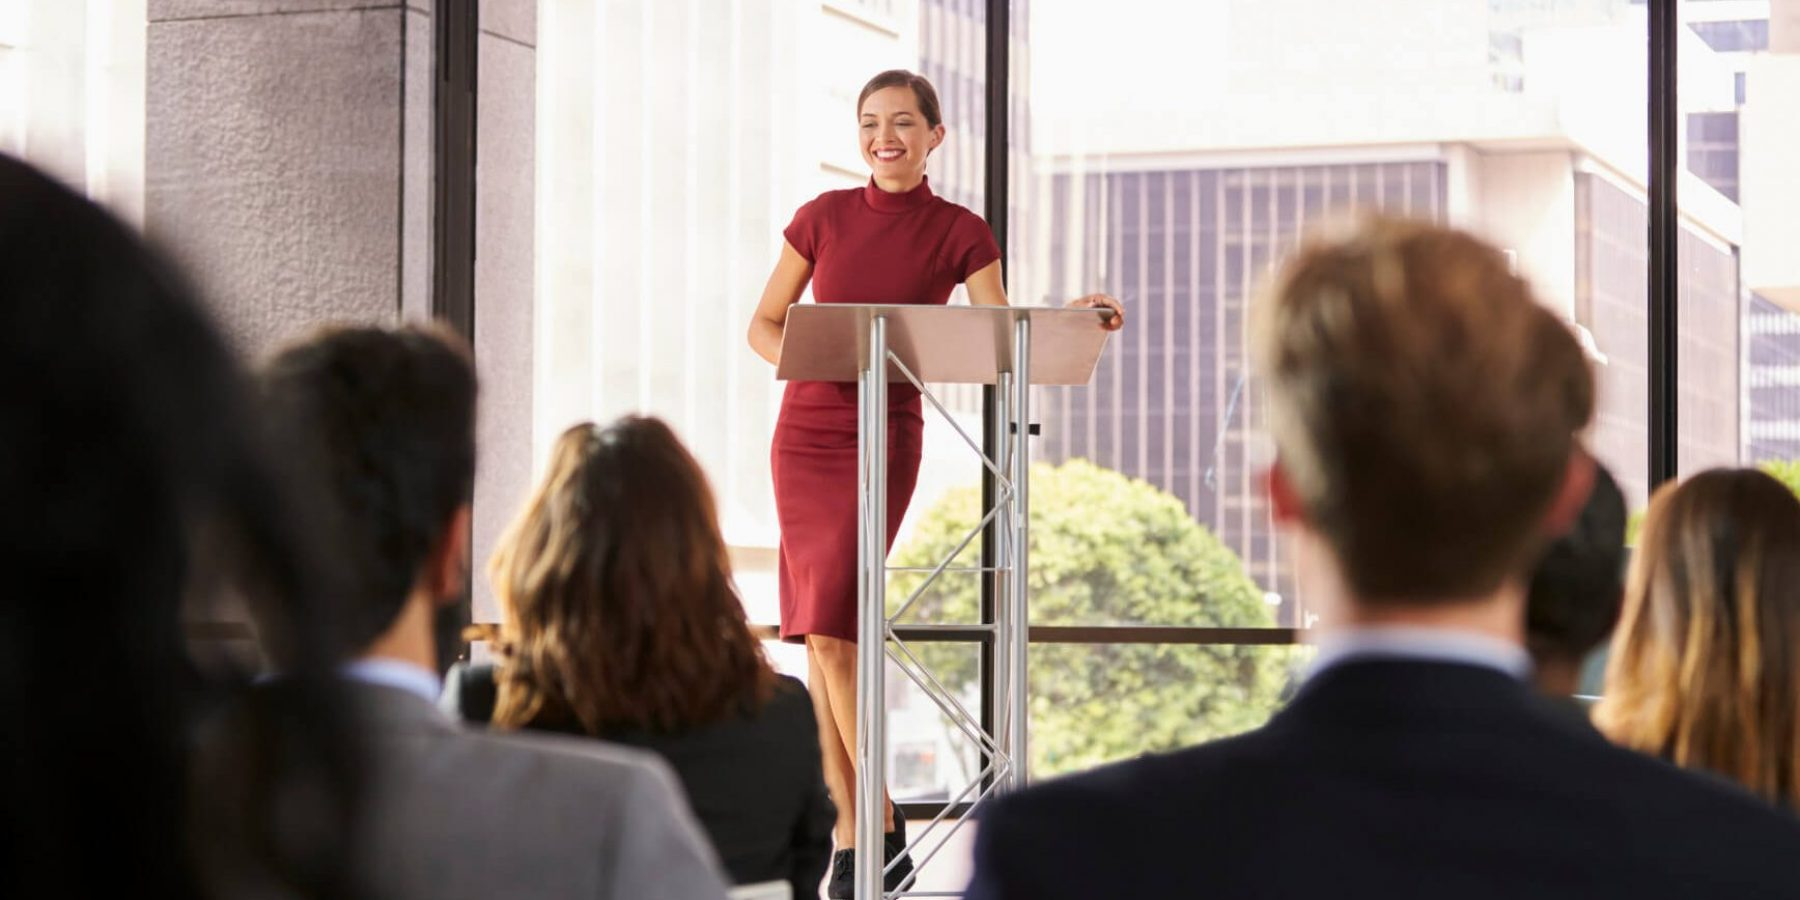 young-woman-leaning-on-lectern-presenting-P3WXMXF